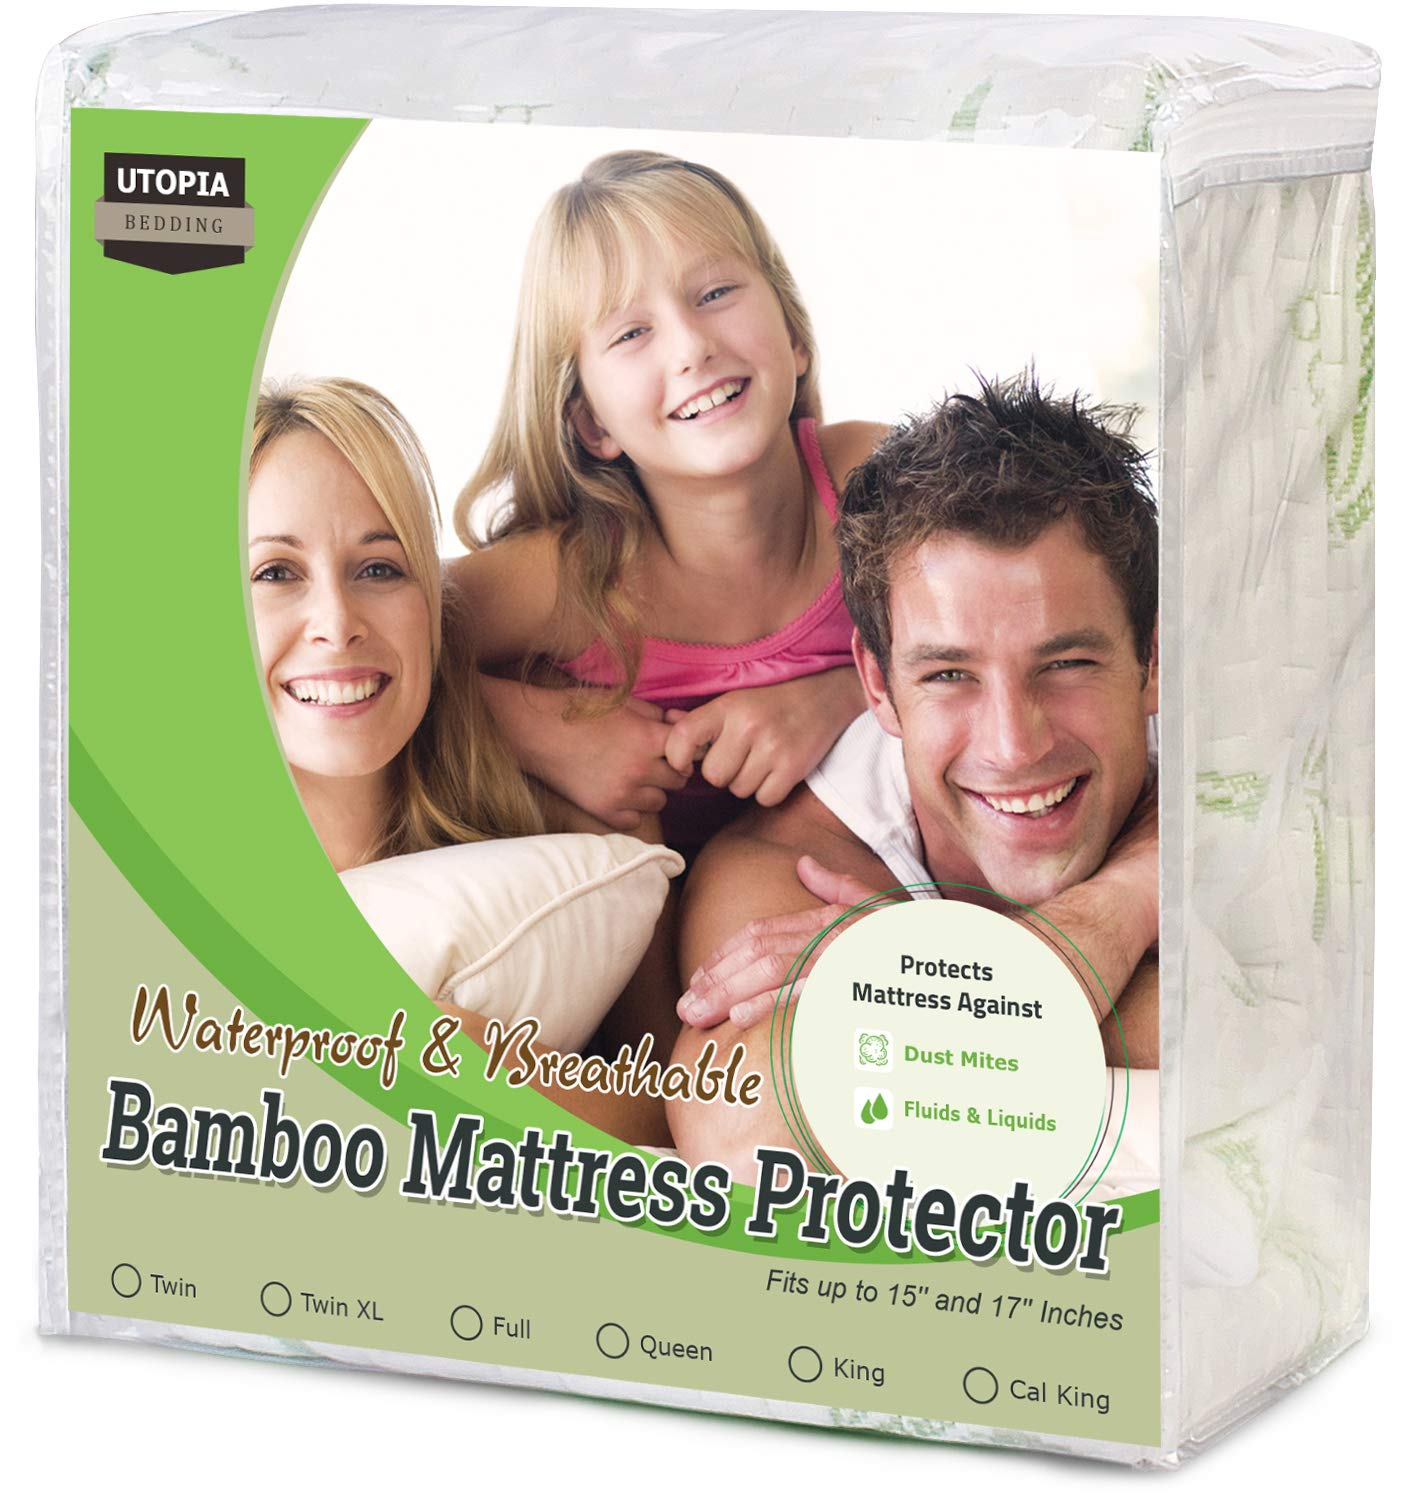 Utopia Bedding Waterproof Bamboo Mattress Protector (Queen)